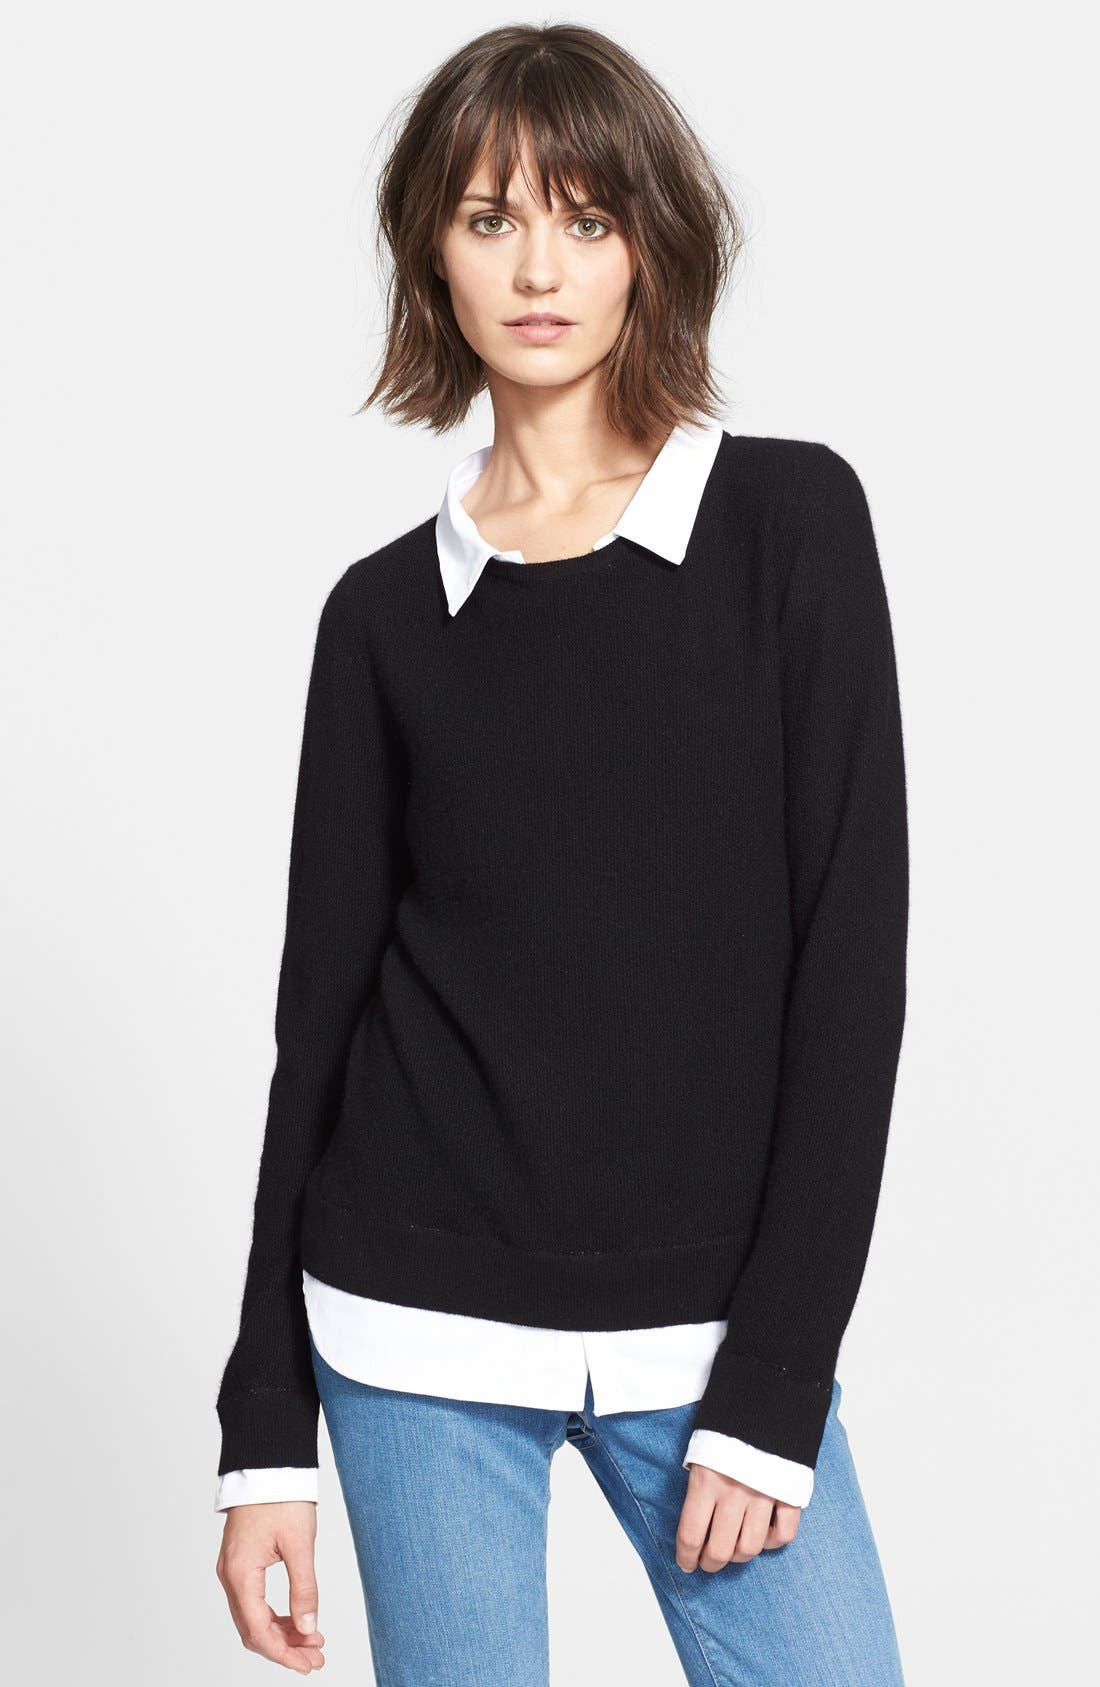 Alternate Image 1 Selected - Joie 'Rika' Layered Look Wool & Cashmere Sweater